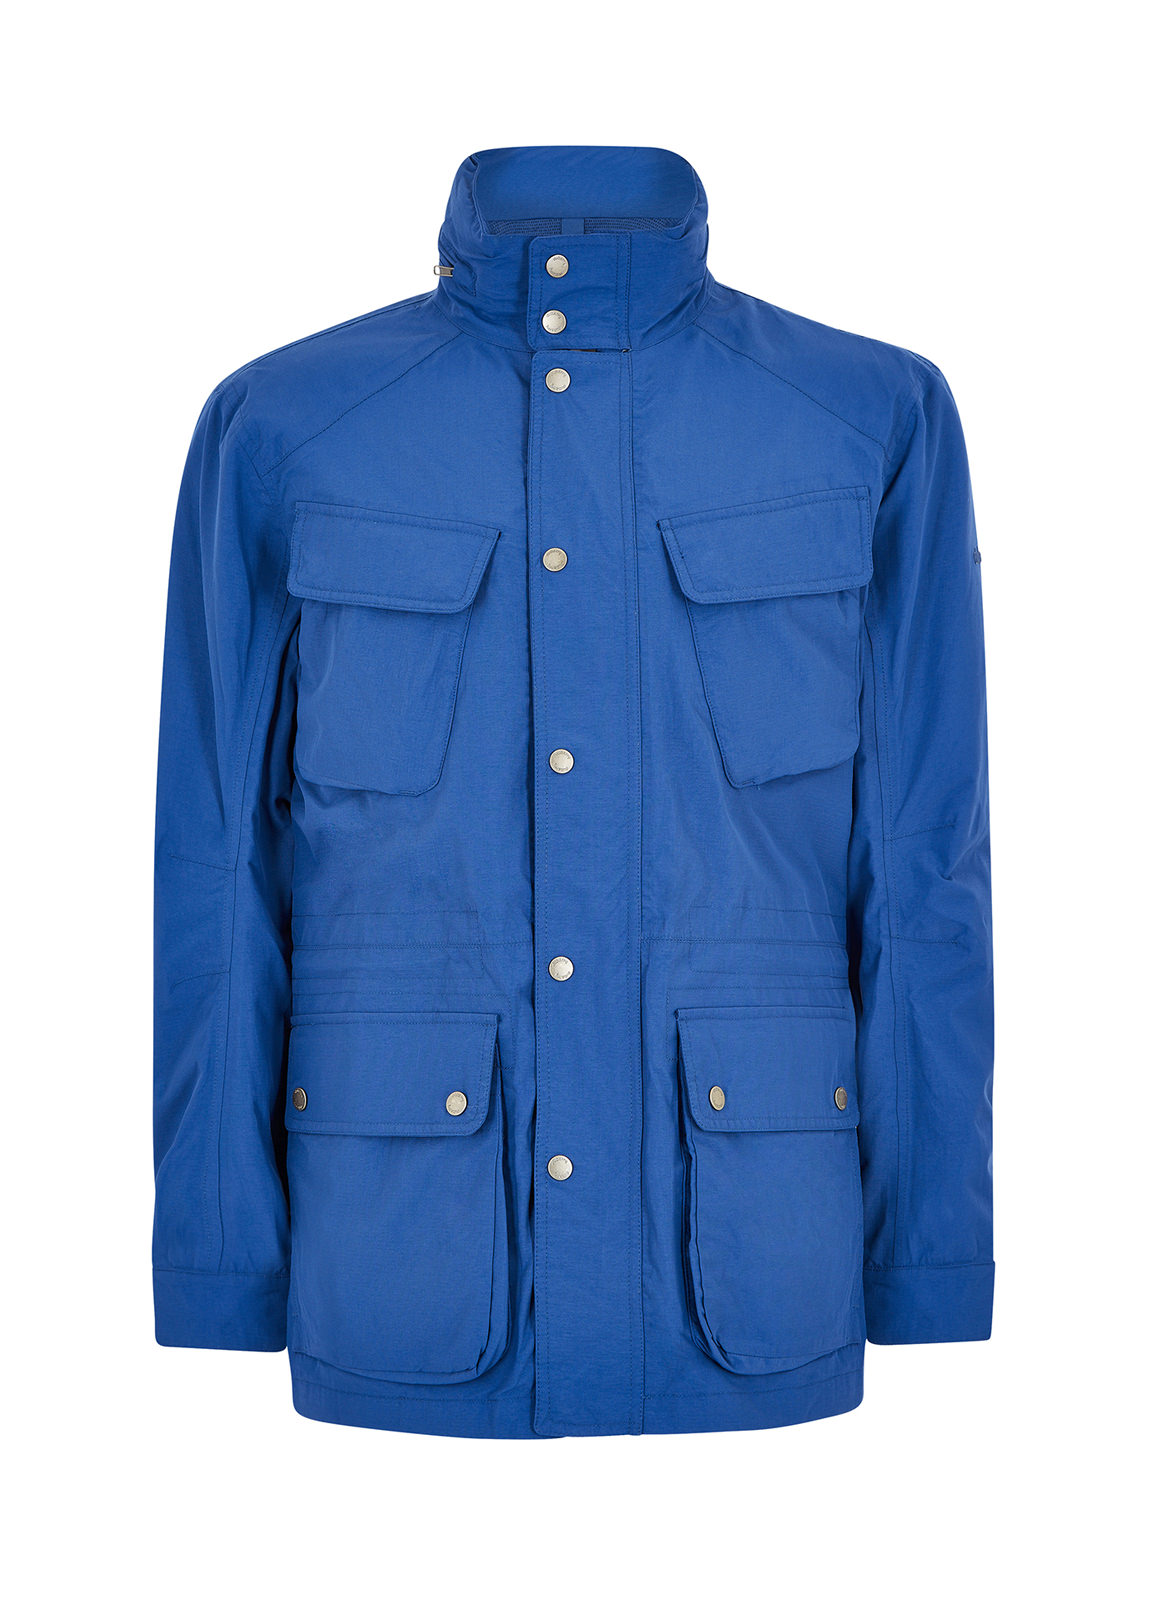 Dubarry_Thornton Waterproof Jacket - Royal Blue_Image_2